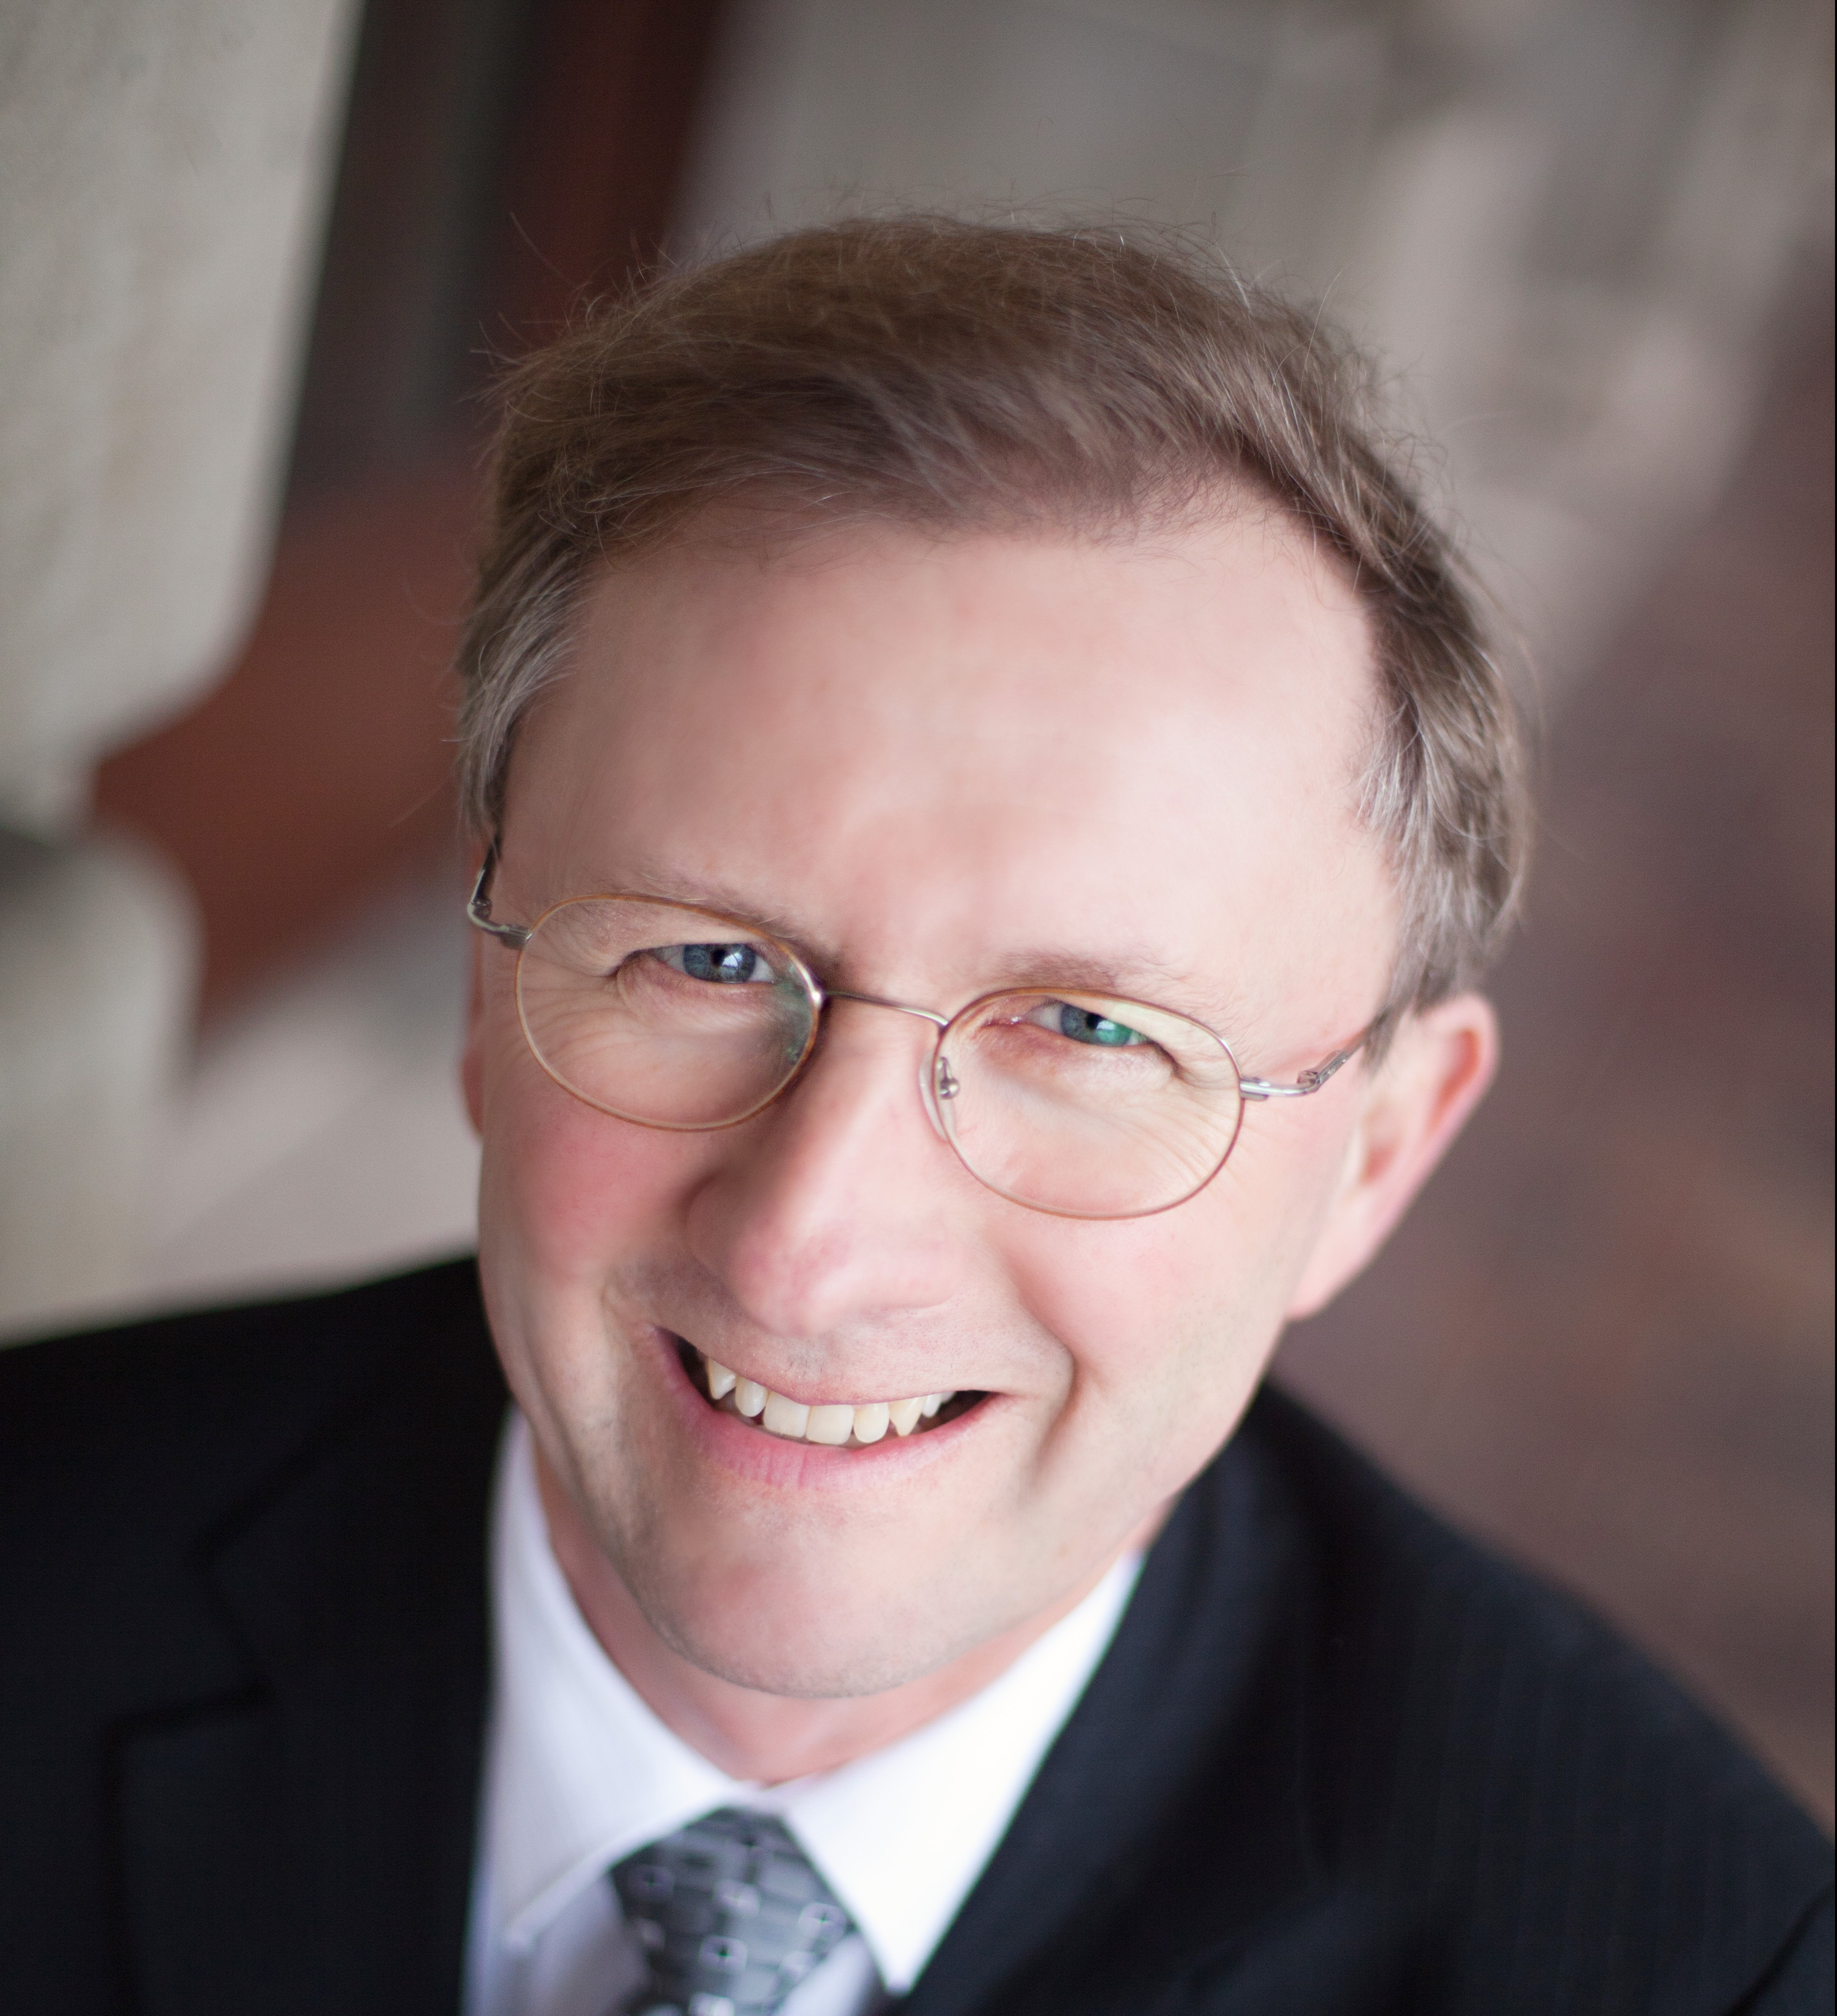 James Doser, Polyphonic.org Editor in Chief, and Director of the Institute for Music Leadership at the Eastman School of Music